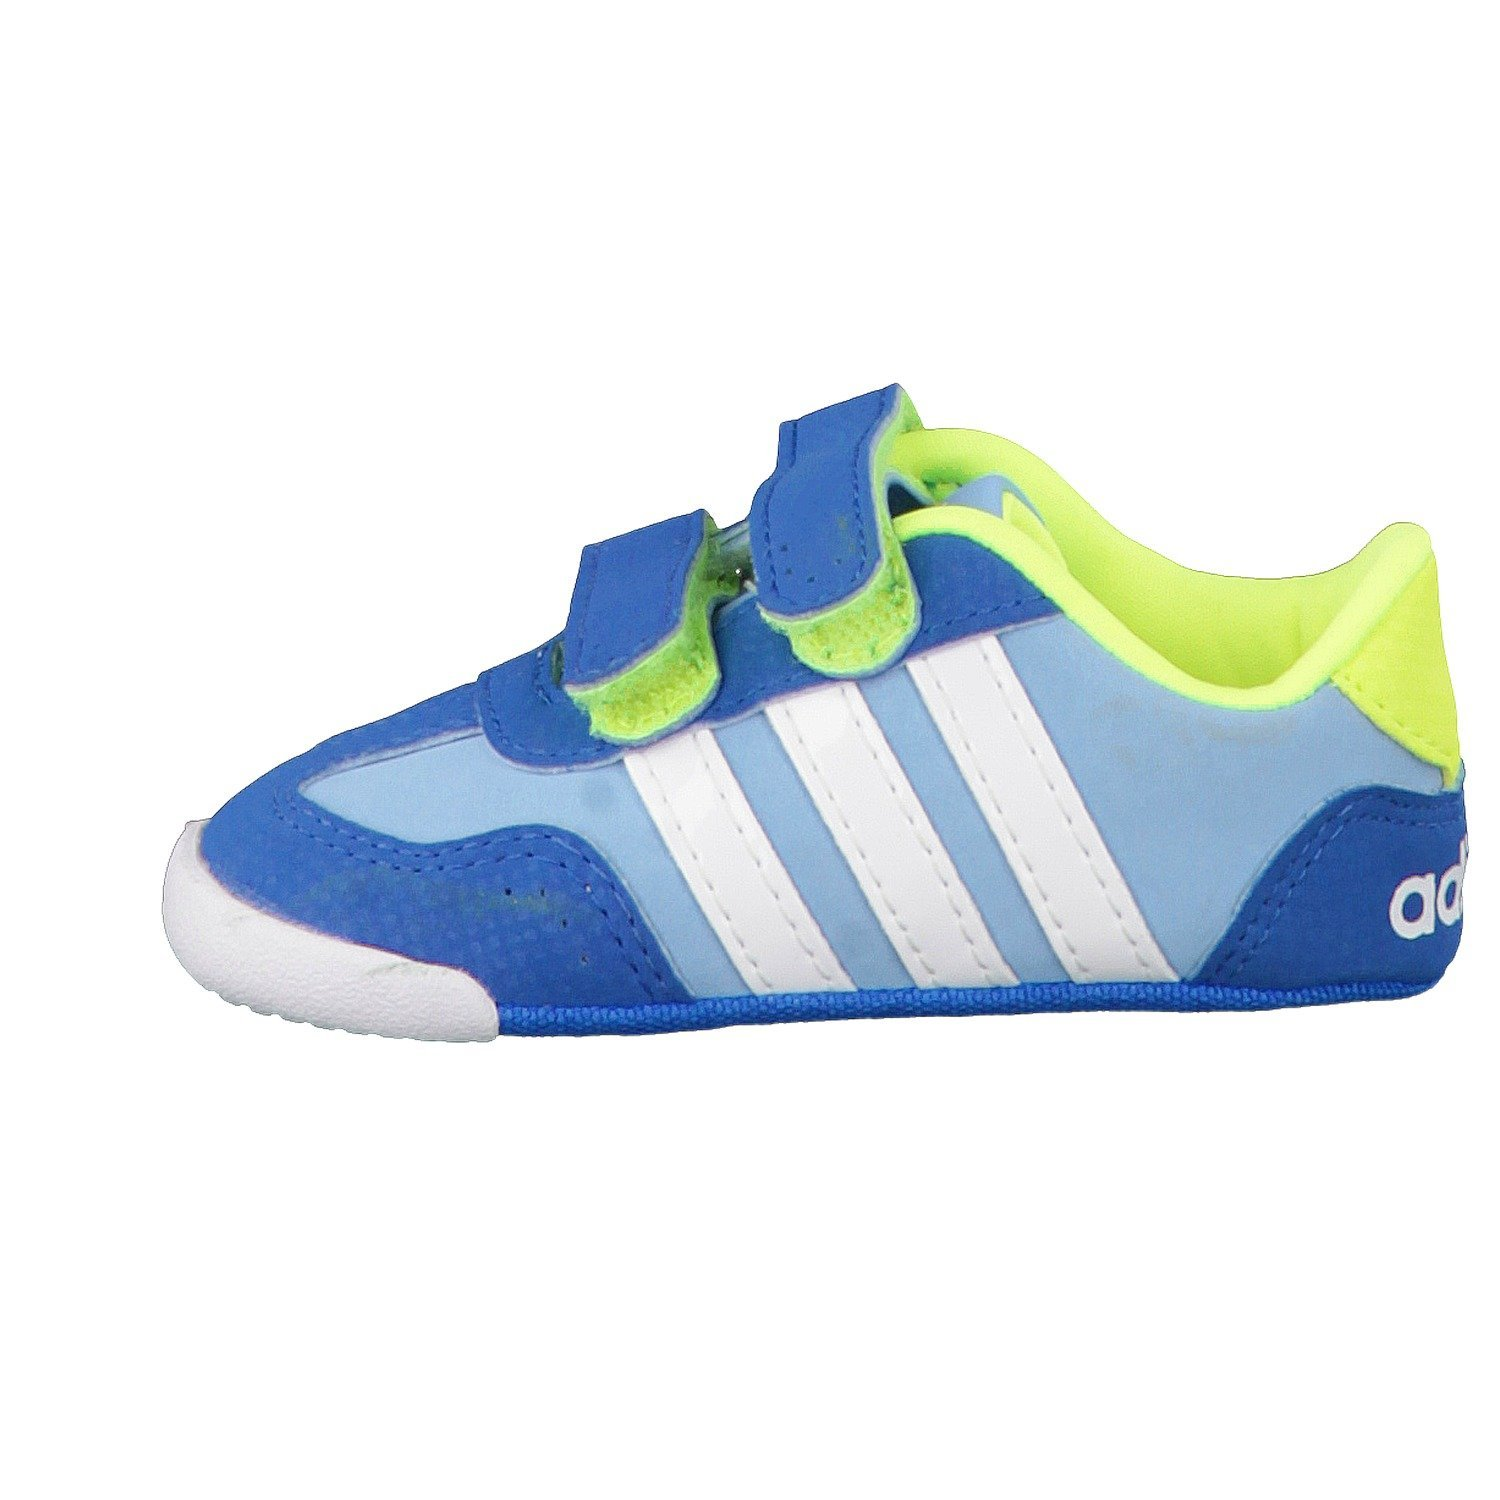 Miniatura Inspeccionar tanto  adidas NEO Dino Infant Kids Boys Crib Shoe Blue- Buy Online in Bosnia and  Herzegovina at bosnia.desertcart.com. ProductId : 228861893.